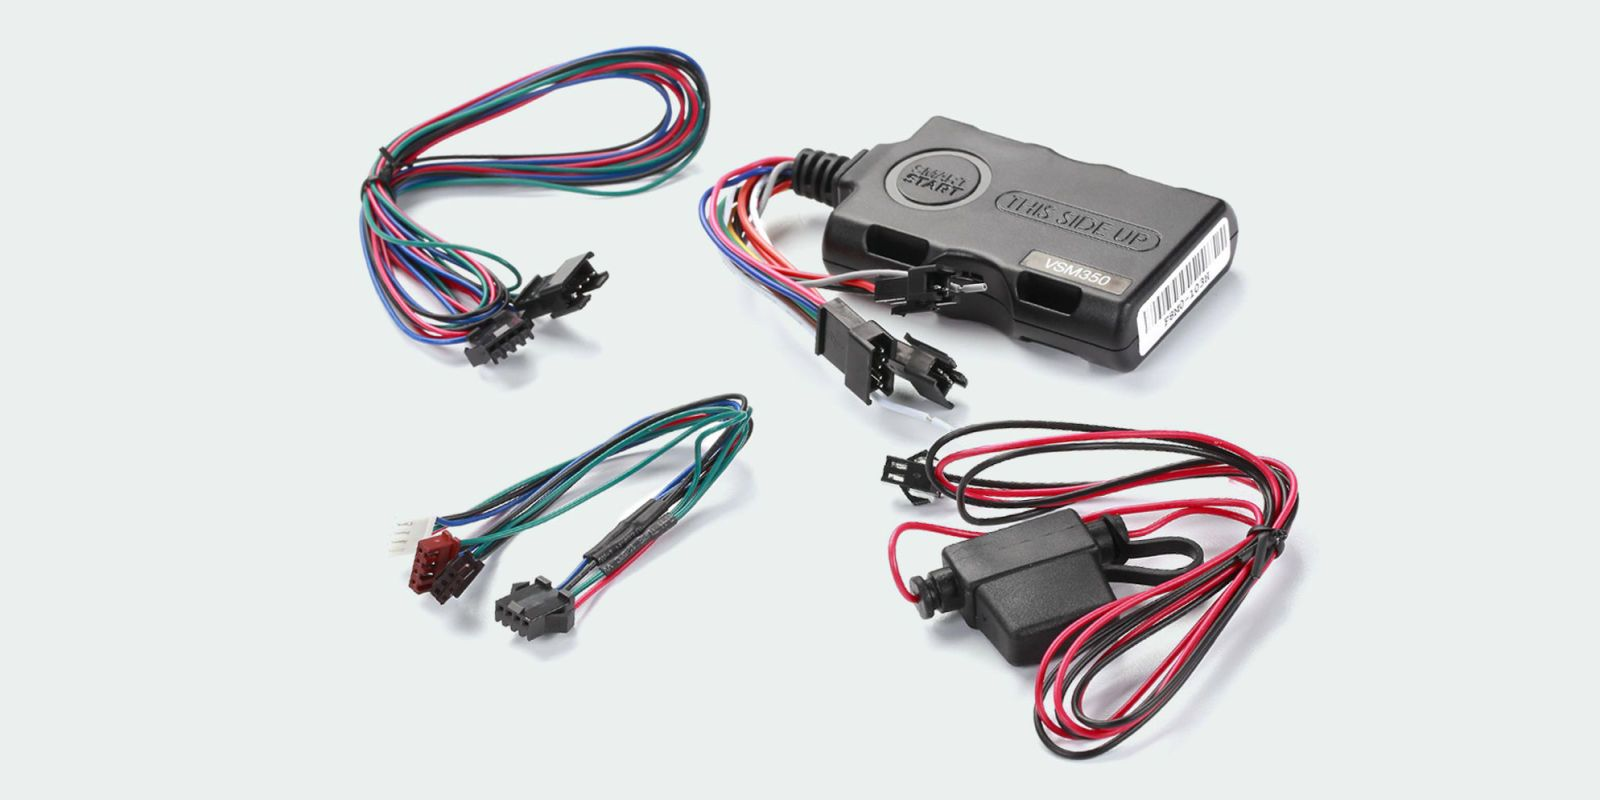 Prevent Theft And Reduce Stress With These Easy To Use Aftermarket Alarm  Systems For Your Car.